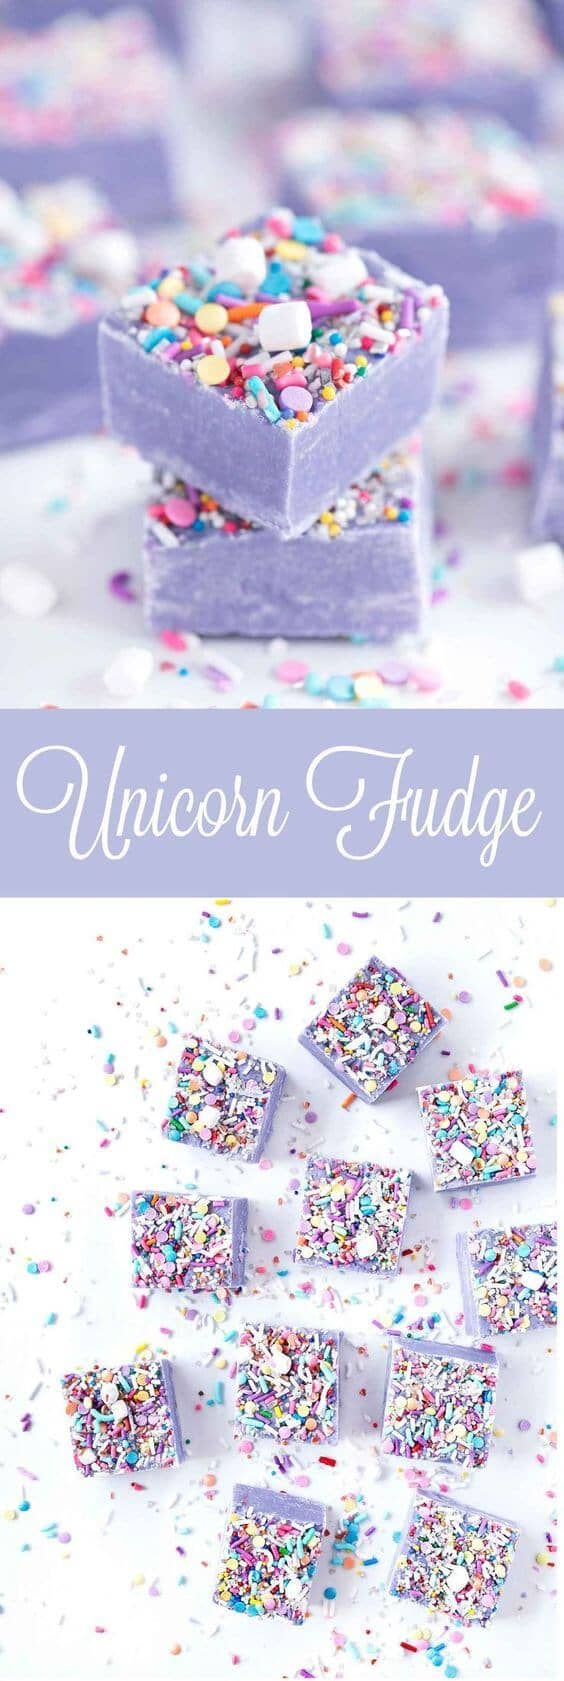 Twilight Lavender Cream Fudge Squares